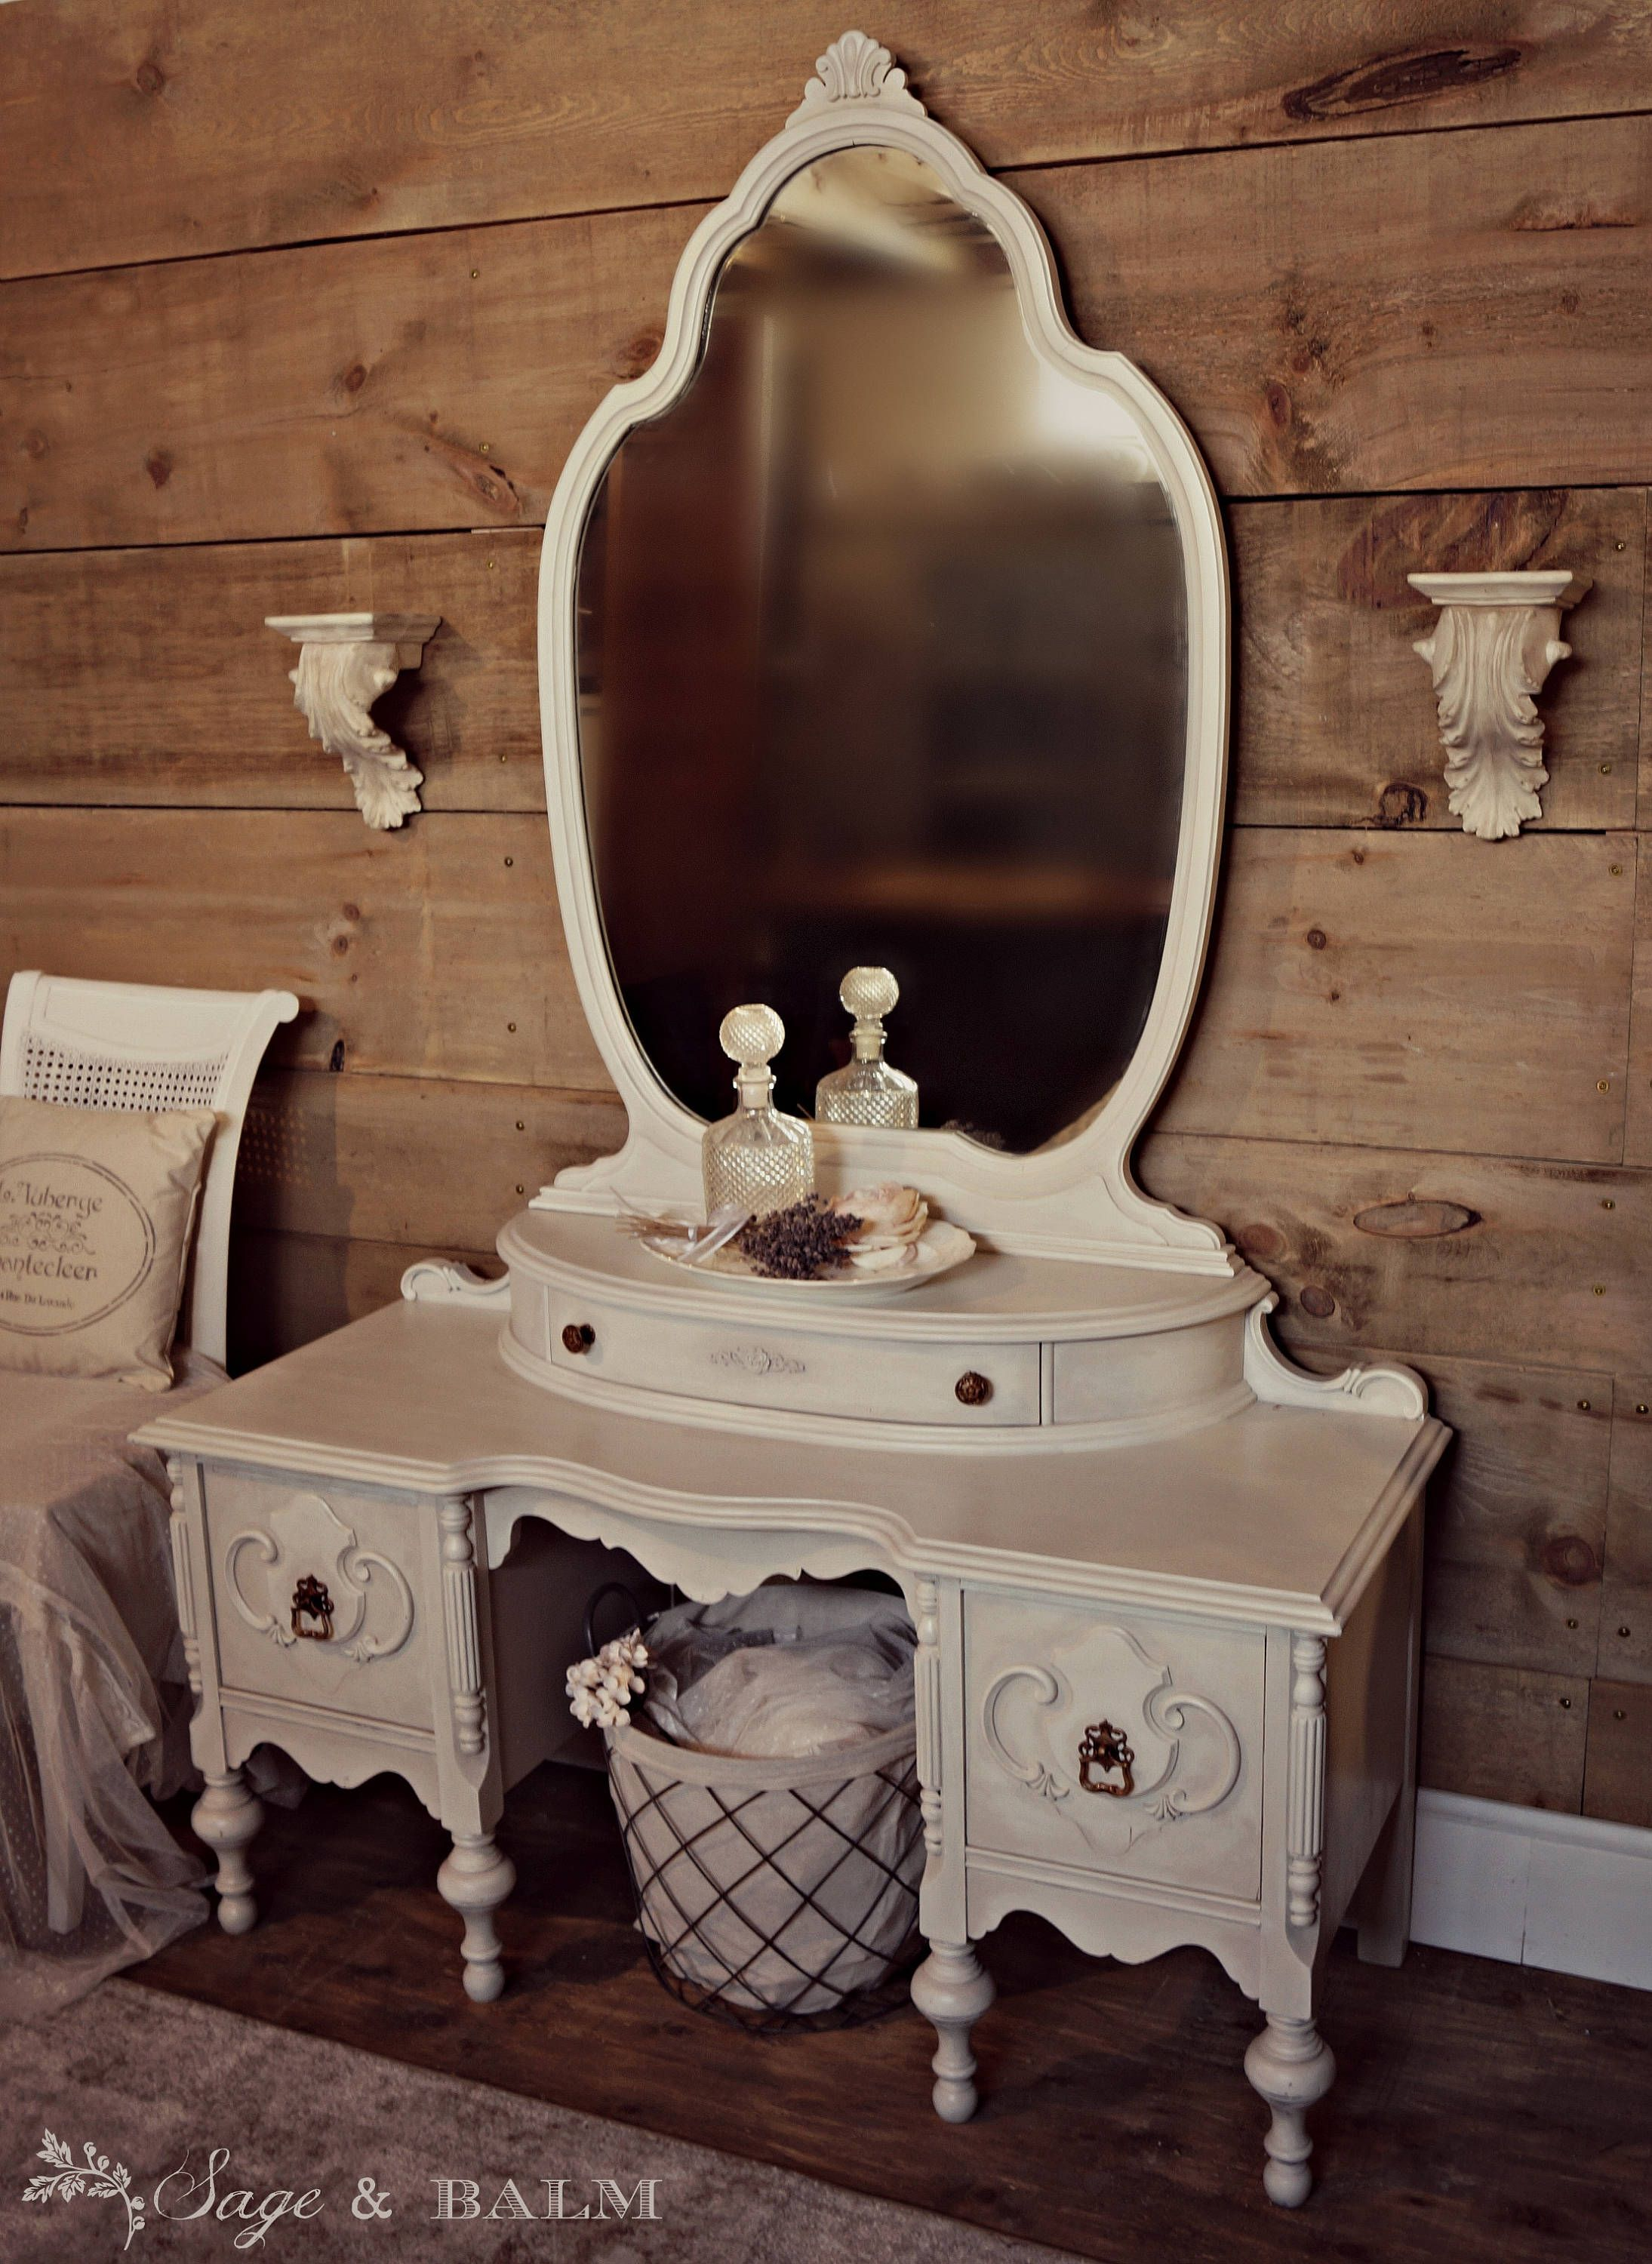 Sold French Provincial Painted Shabby Chic Vanity With Mirror Gustavian Antique White Painted Vanity Dressing Table Painted Desk Shabby Chic Decor Shabby Chic Vanity Shabby Chic Furniture